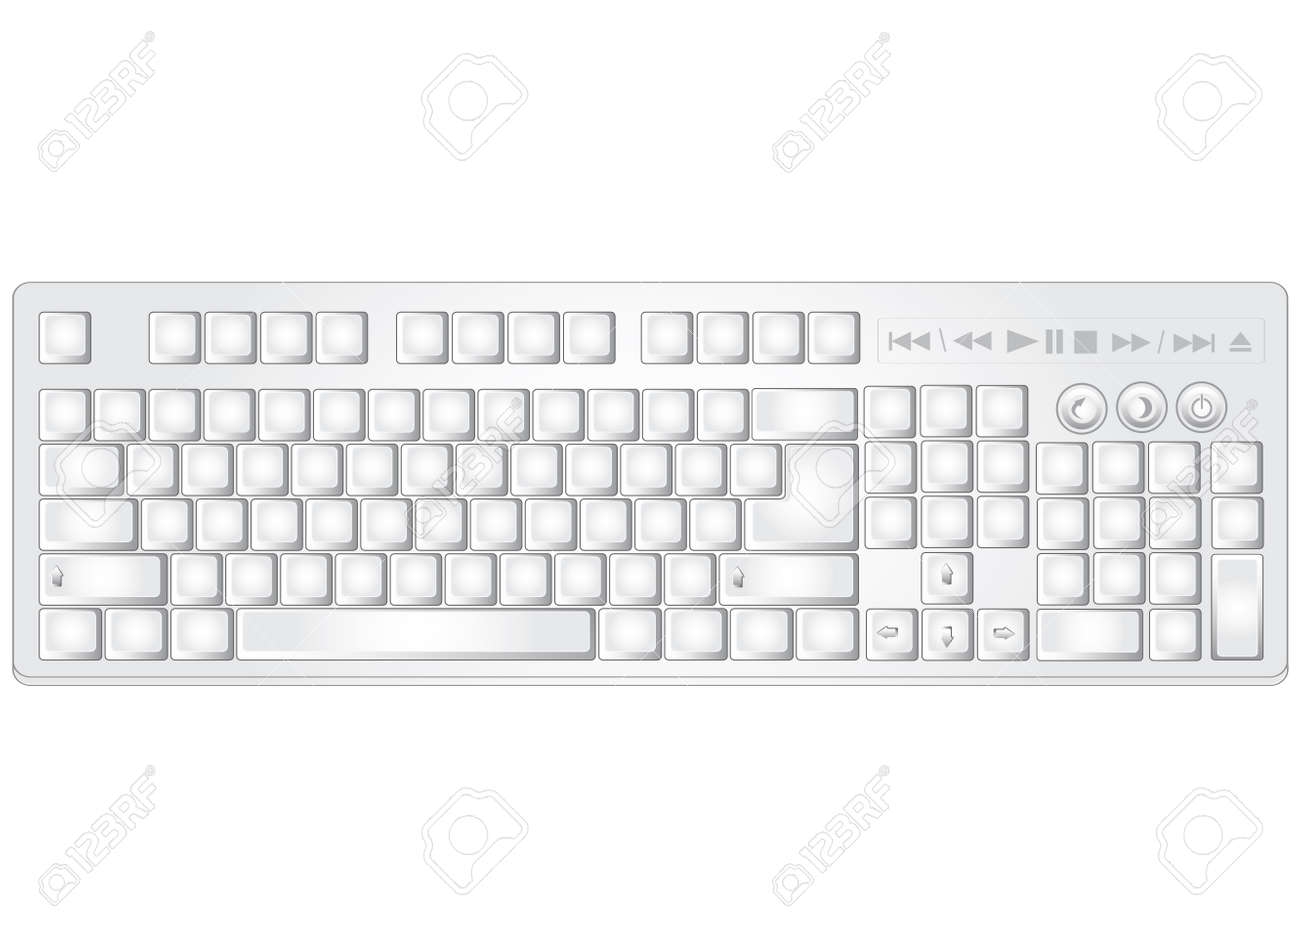 Symbols in computer keyboard image collections symbol and sign ideas white vector pc multimedia keyboard without text and symbols white vector pc multimedia keyboard without text buycottarizona Gallery